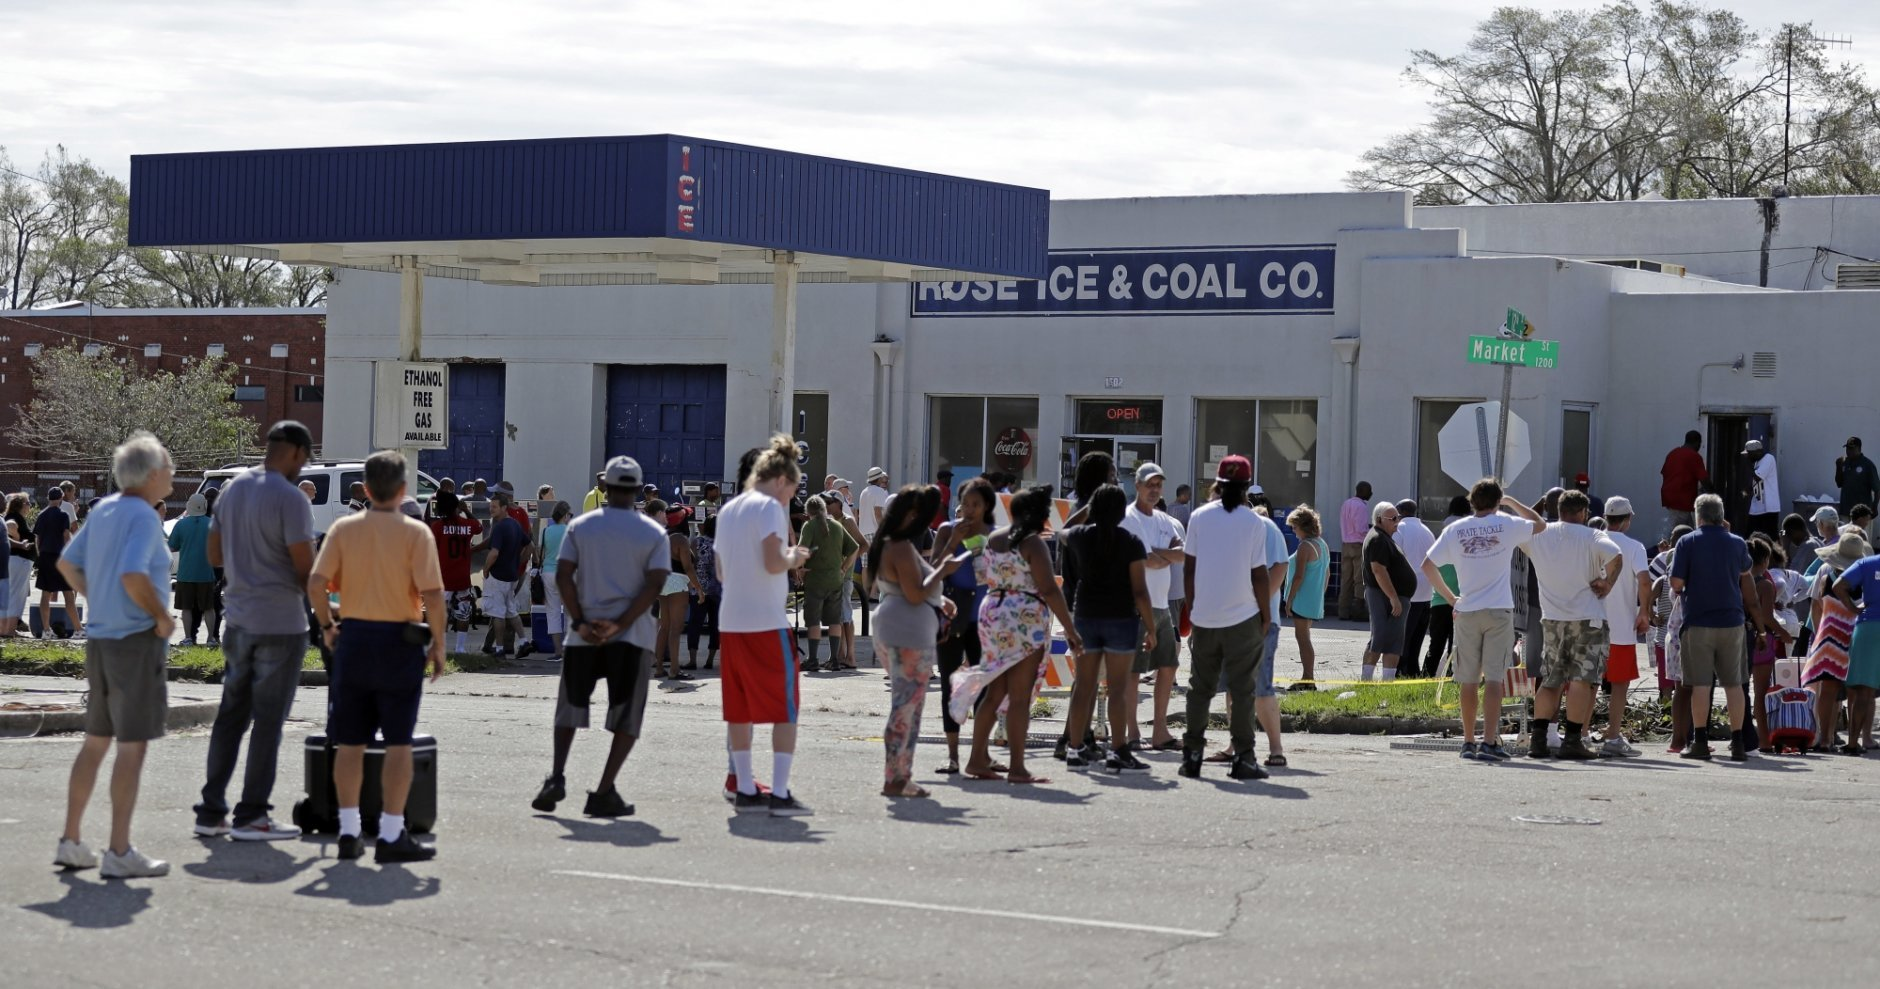 Customers line up outside Rose Ice and Coal Co. to purchase bags of ice in Wilmington, N.C. Tuesday, Sept. 18, 2018. (AP Photo/Chuck Burton)